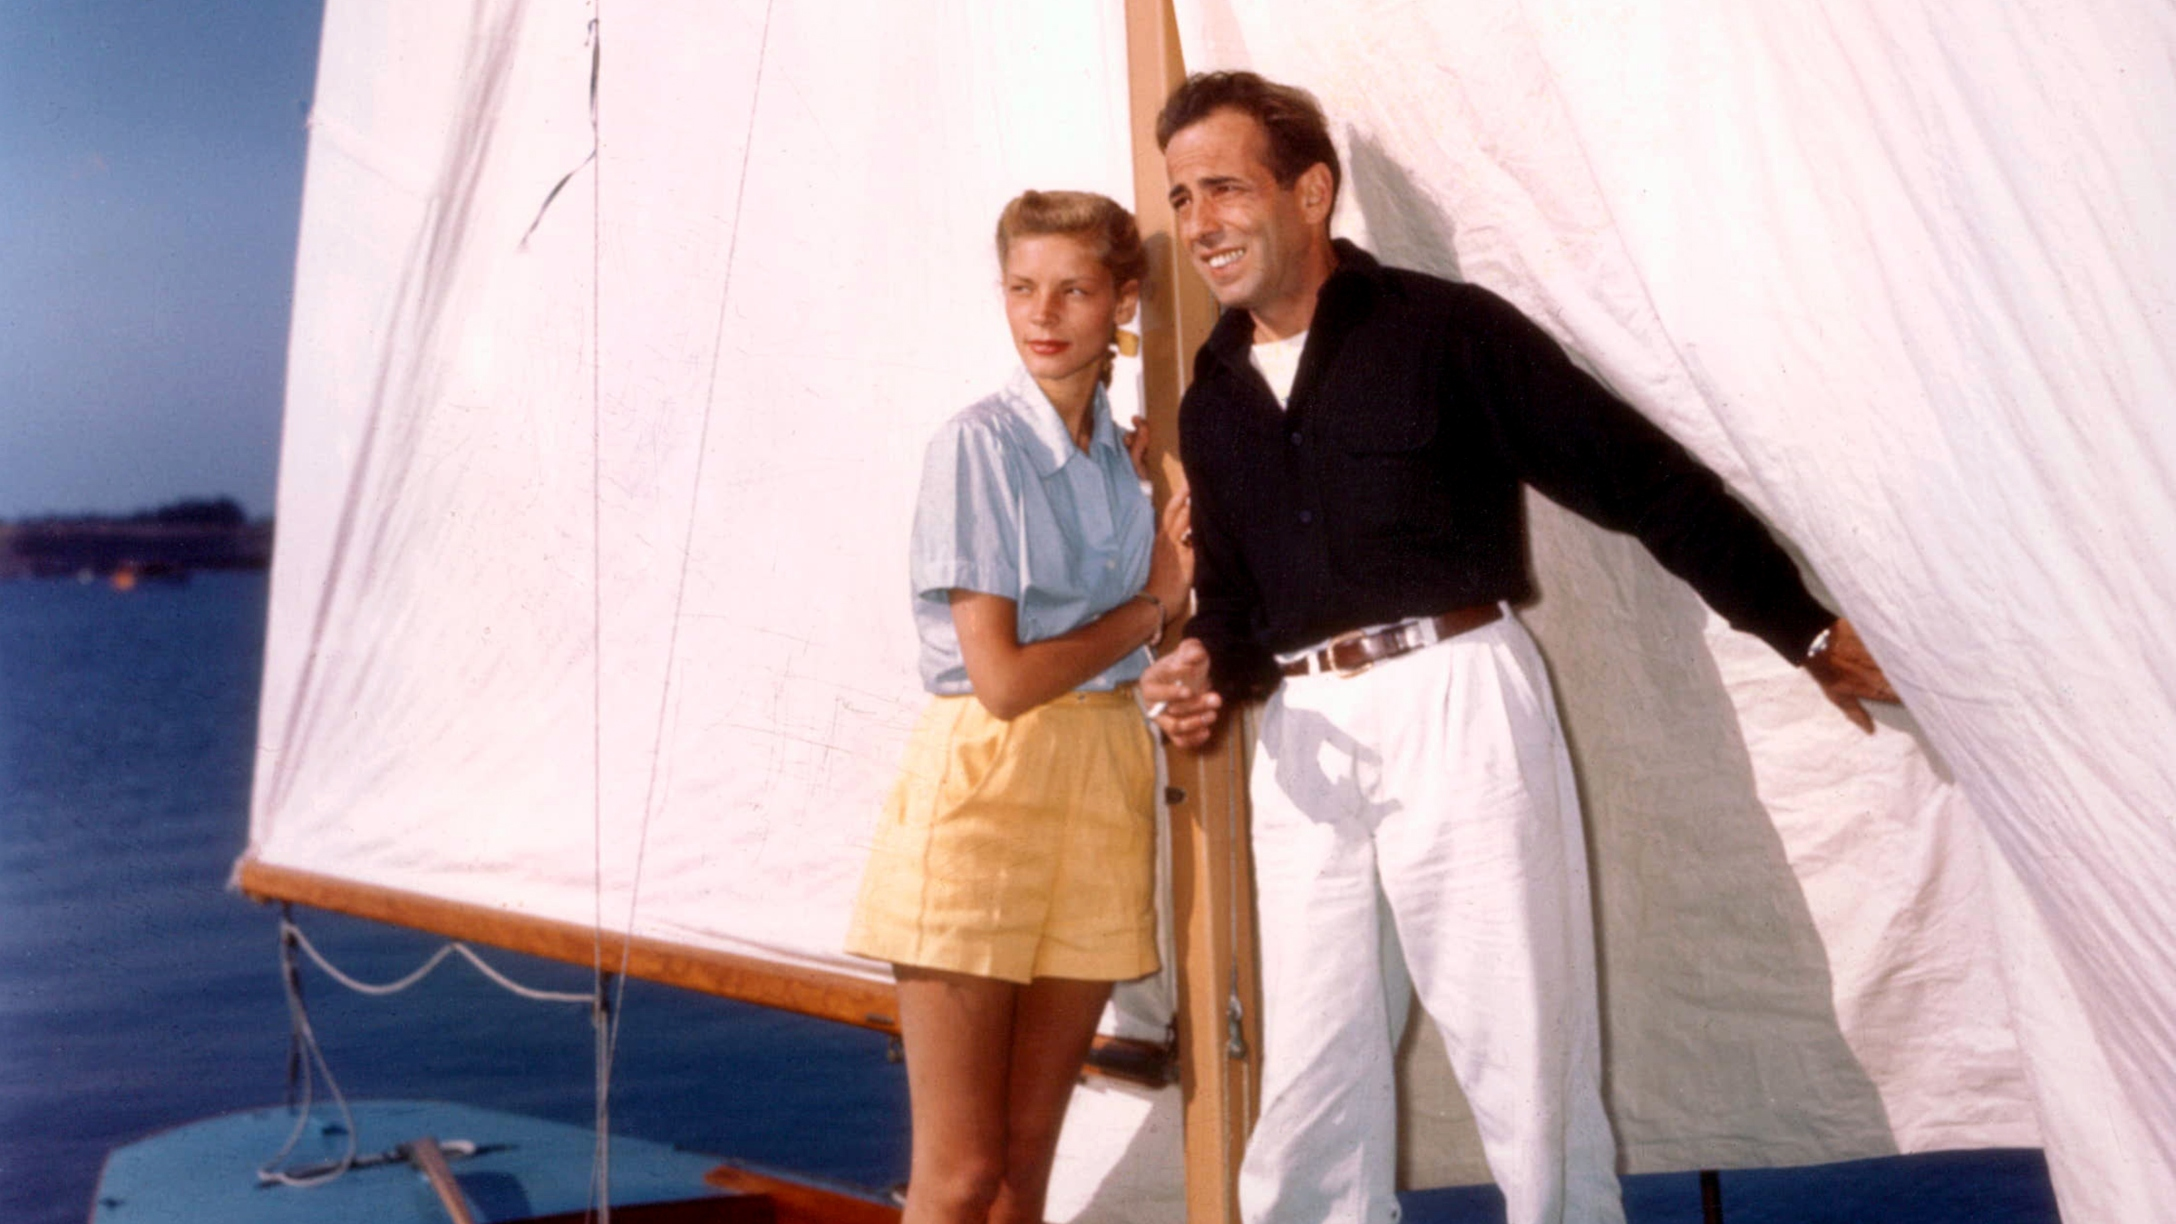 People Were Skeptical But It Turns Out Humphrey Bogart And Lauren Bacall Had Real Love